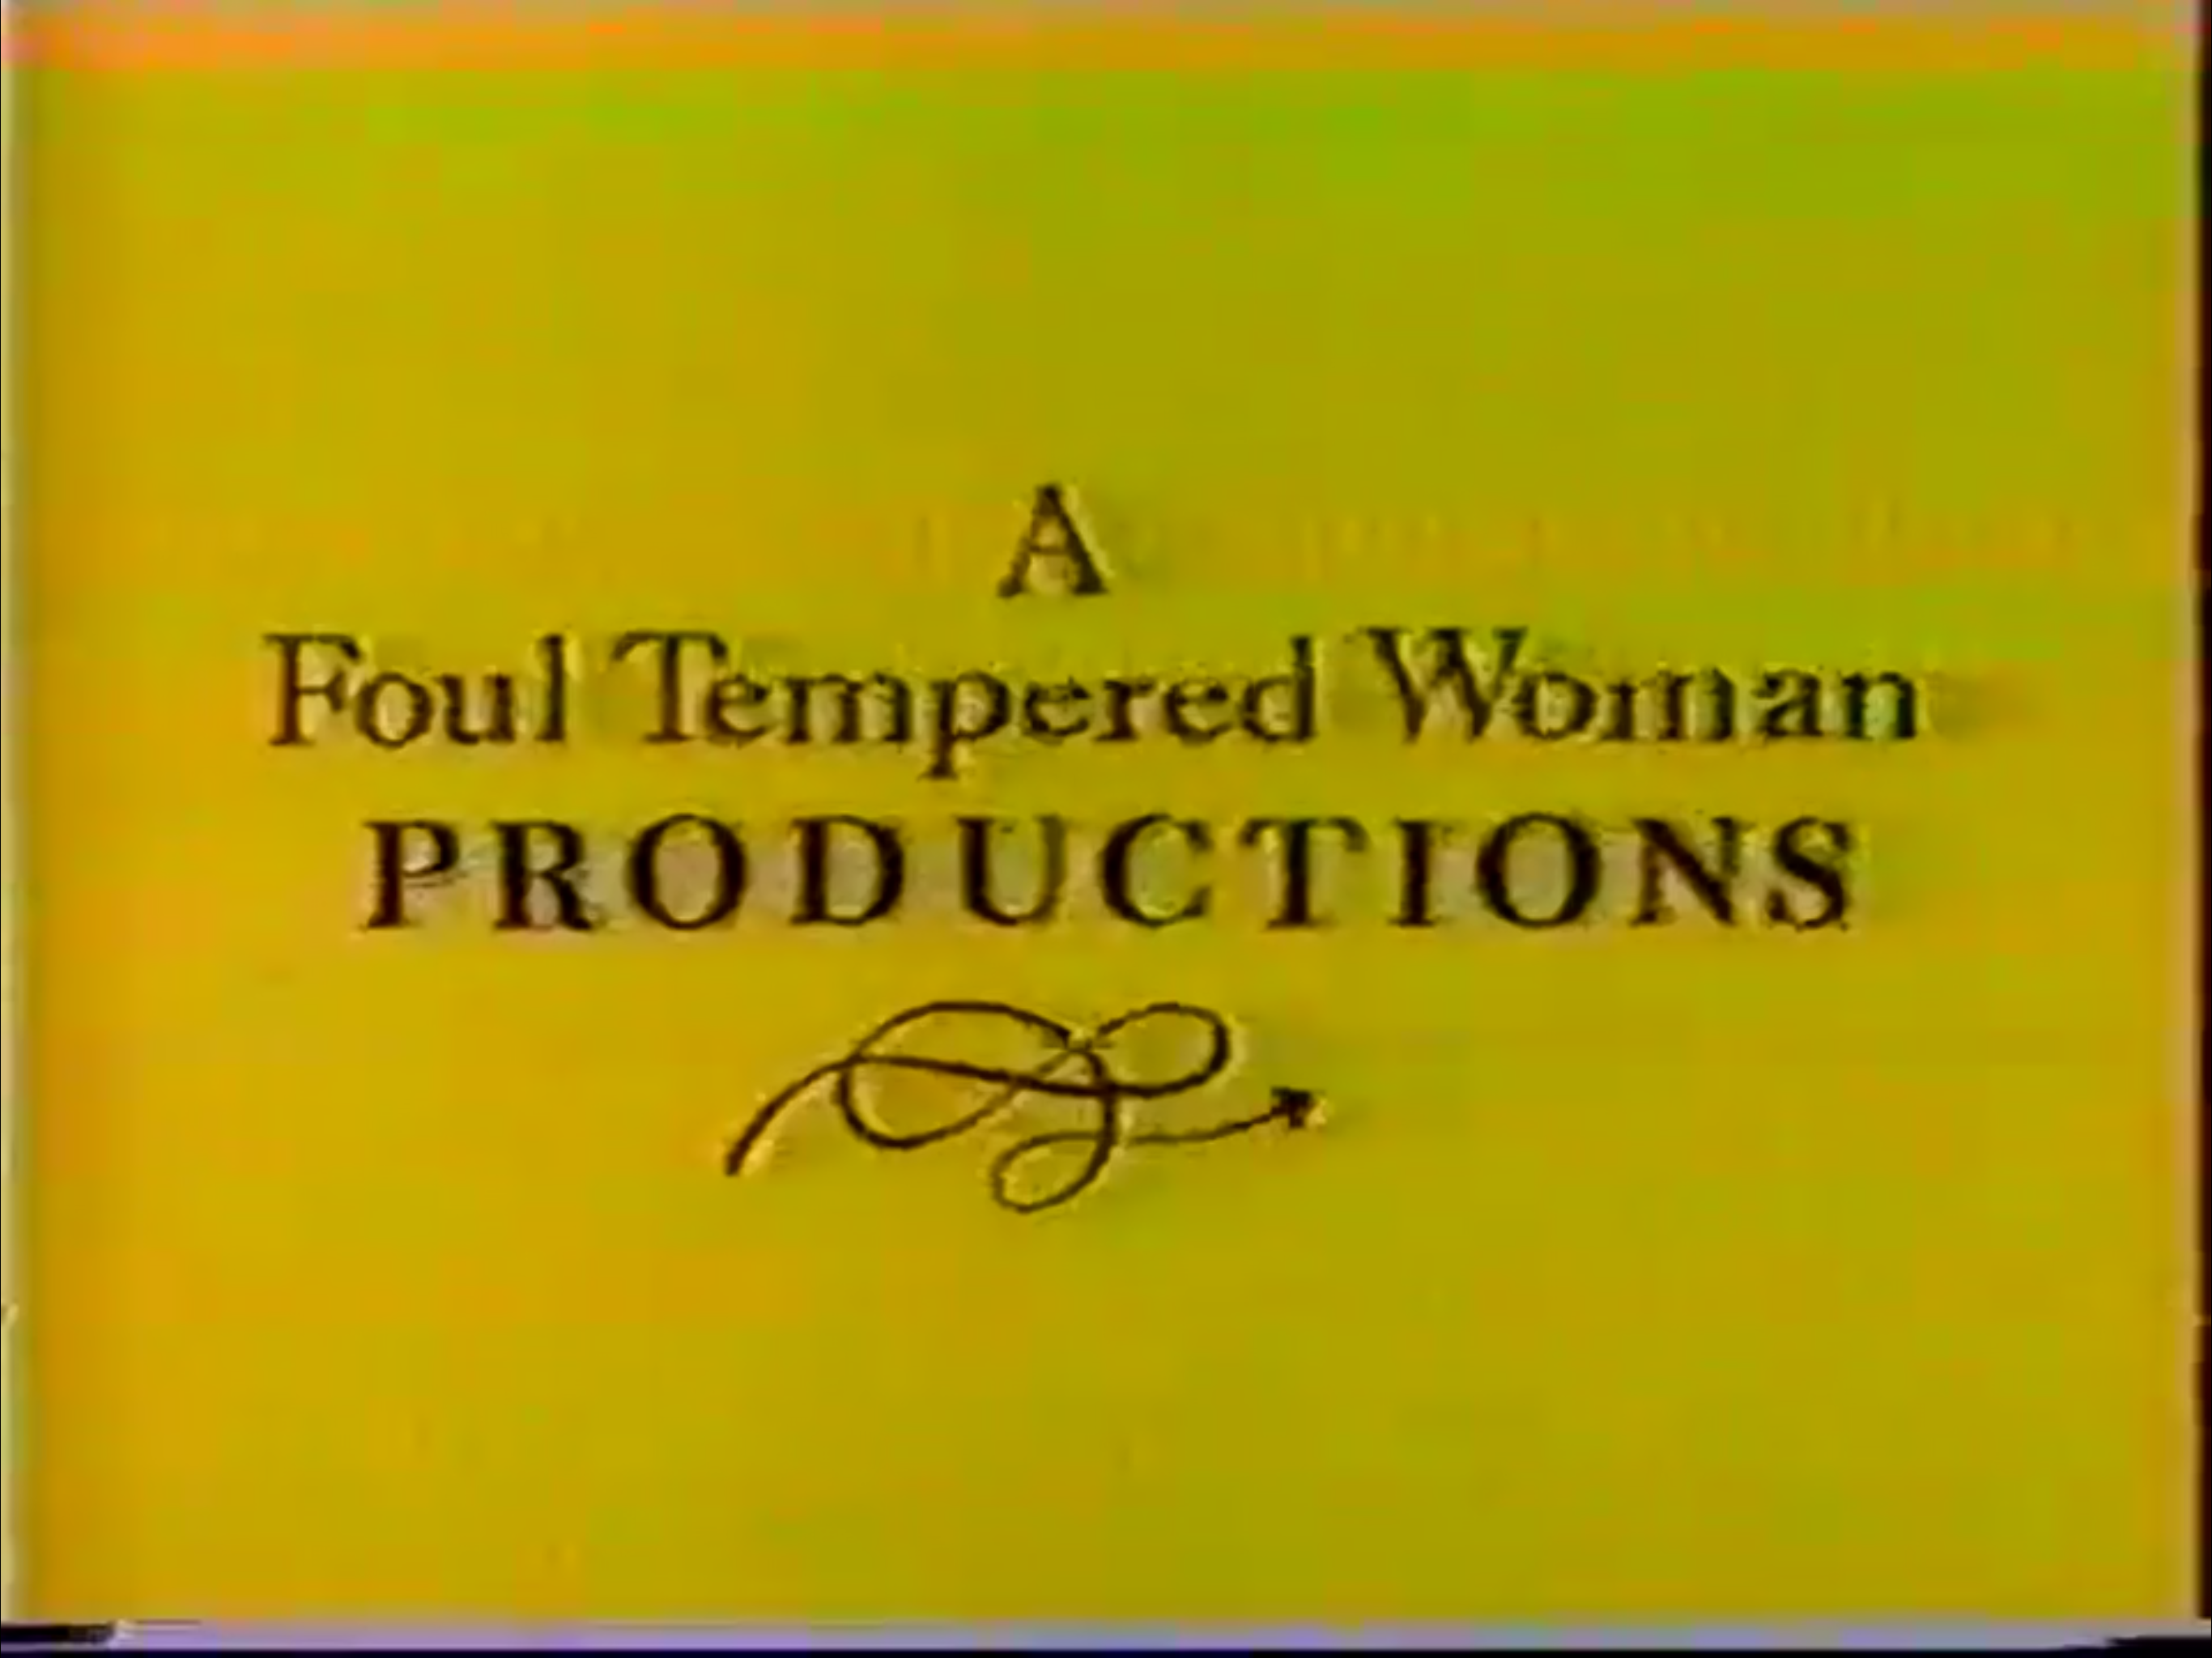 A Foul Tempered Woman Productions